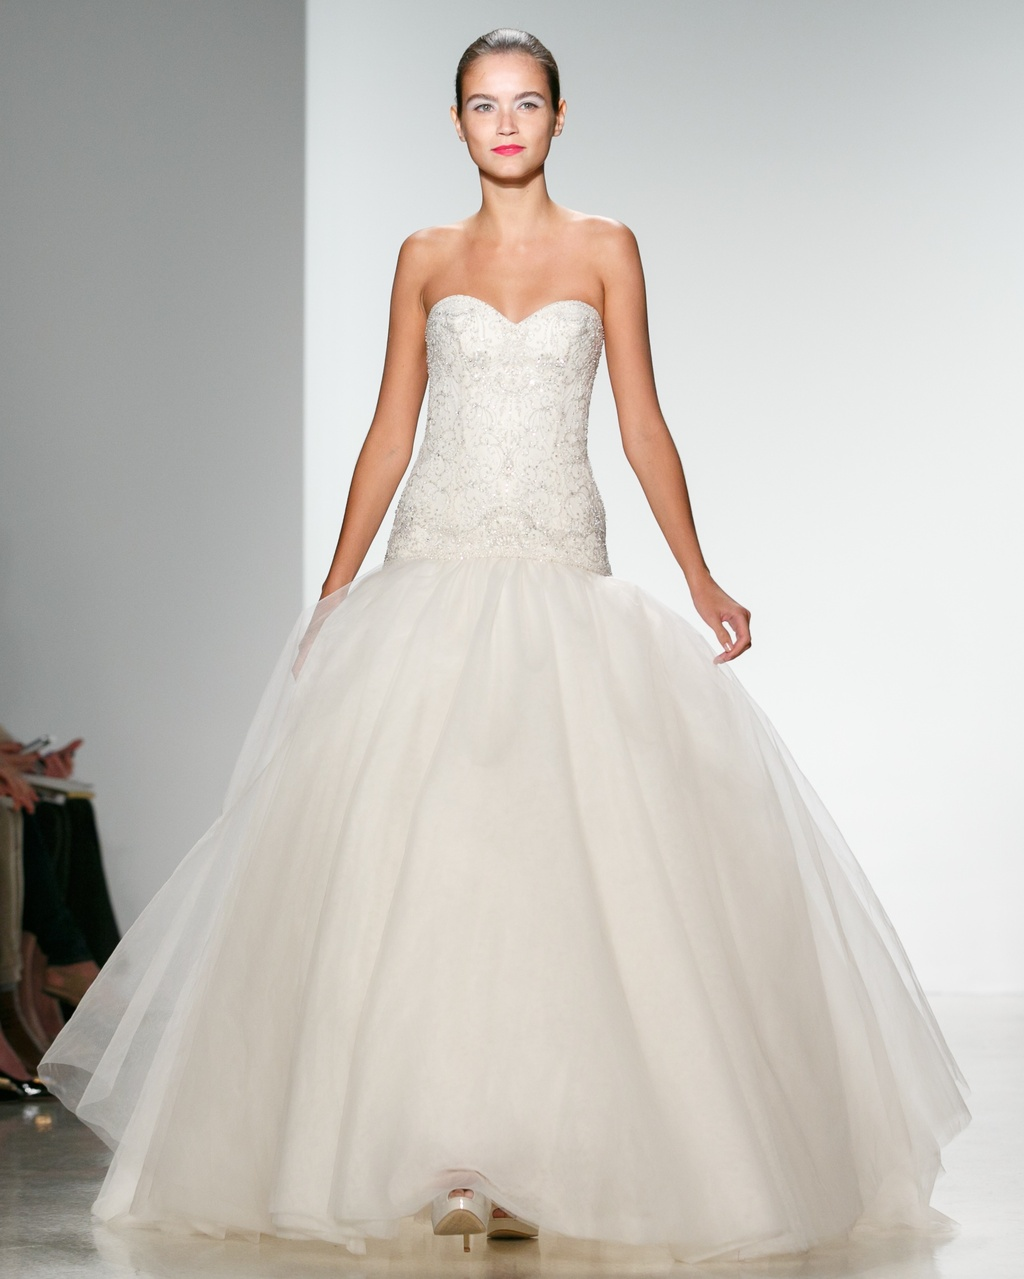 Kenneth-pool-wedding-dress-spring-2014-bridal-gloria.full